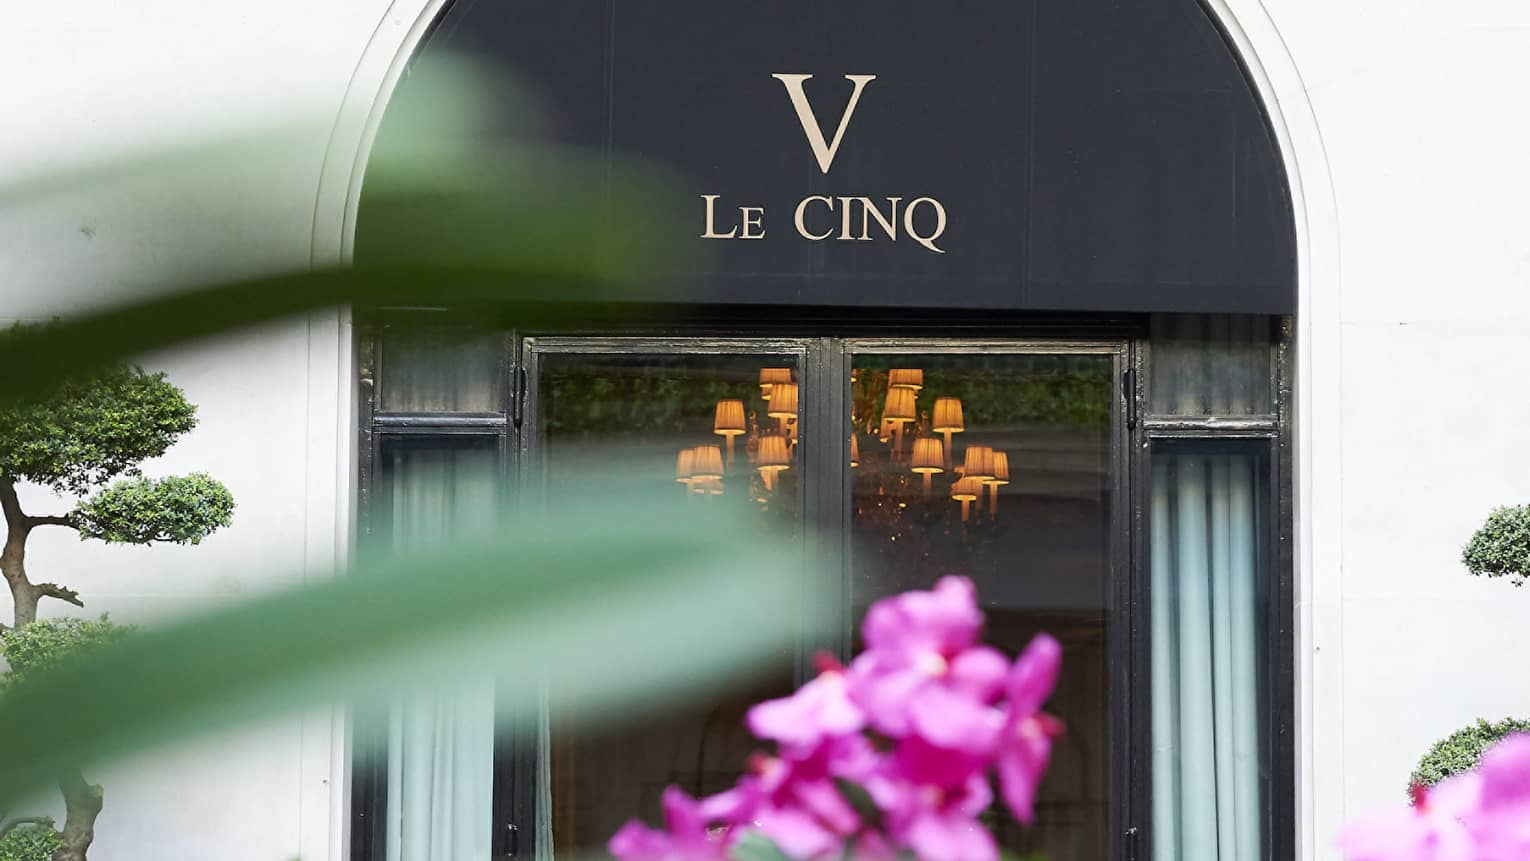 Le Cinq awning over entrance past purple flowers